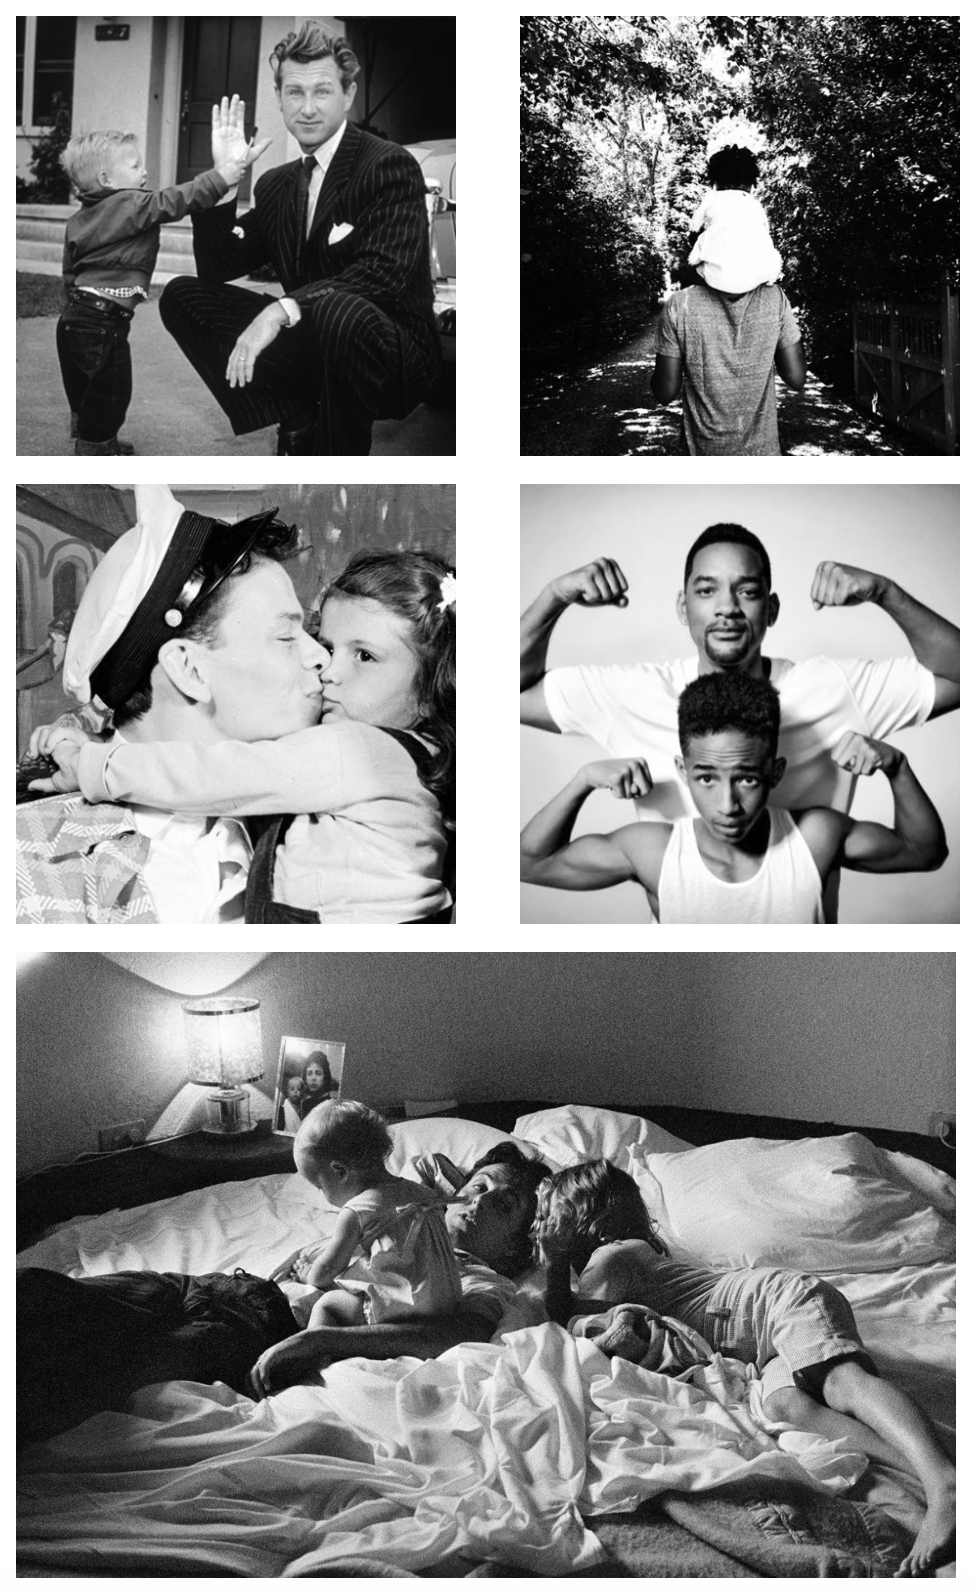 Images from top left to right: Image via Pinterest. // Lloyd Bridges with son, Jeff Bridges. Image via Refinery 29. // Jay Z with Blue Ivy.  Image via Pinterest. // Frank Sinatra with Nancy Sinatra. Image via Pinterest. Will Smith with Jaden Smith. Image via Vanity Fair. // Paul McCartney with James and Stella.